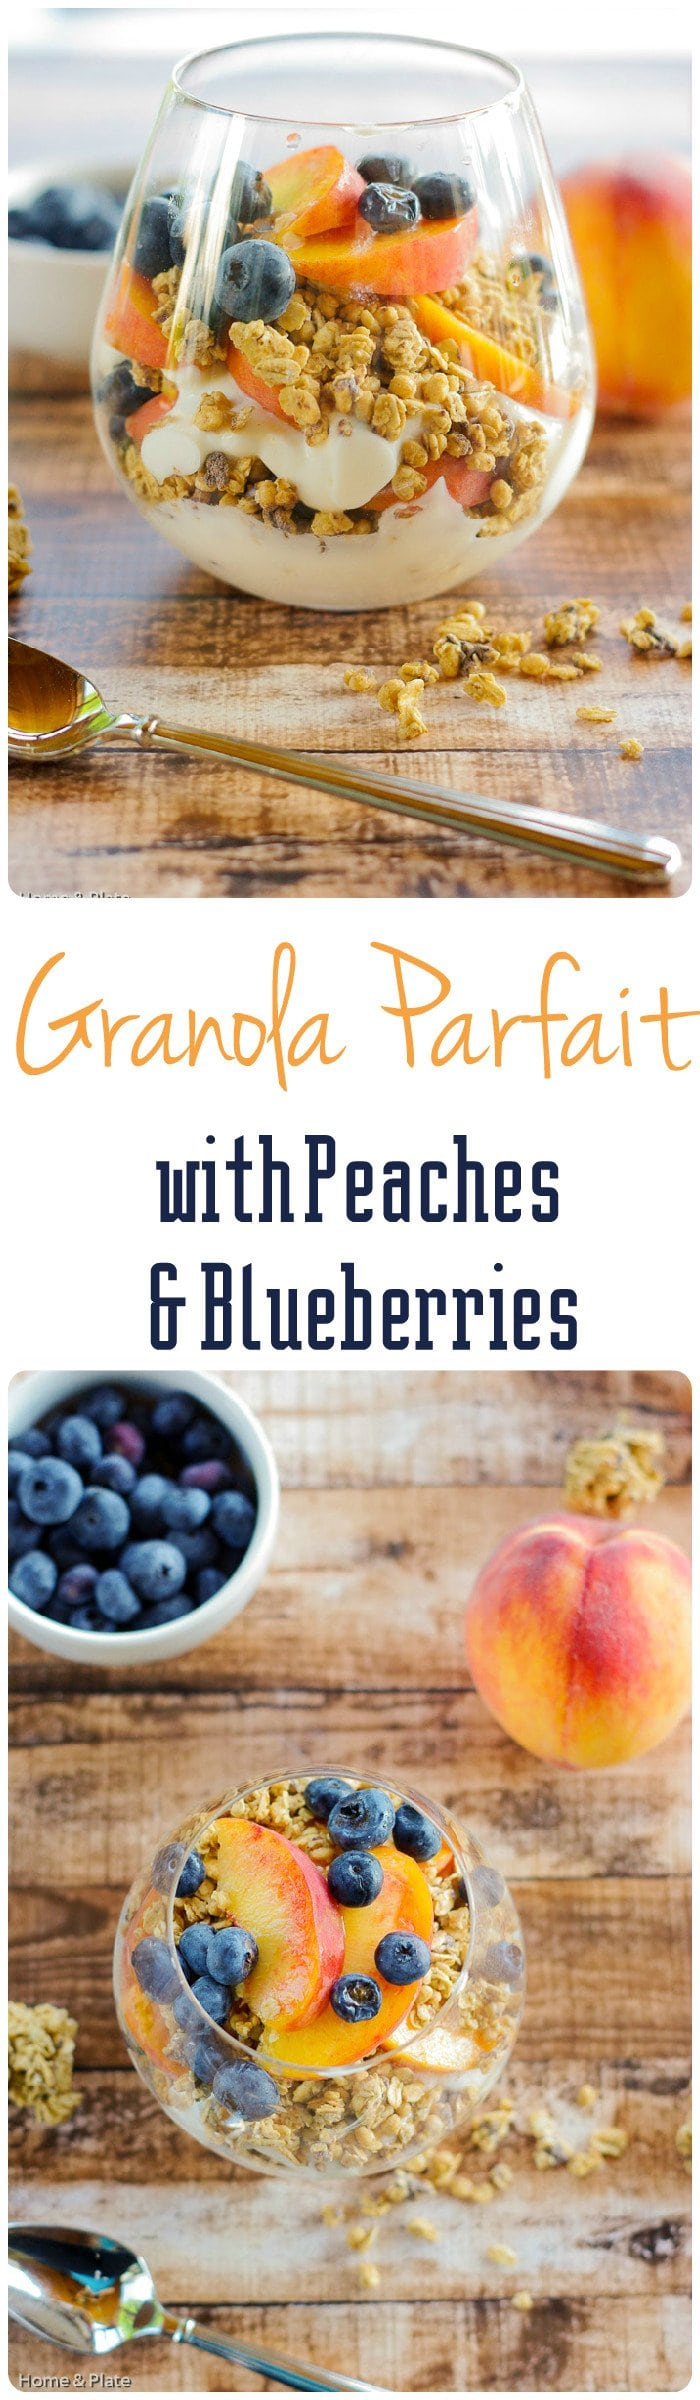 Granola Parfaits with Peaches & Blueberries | Home & Plate | www.homeandplate.com | Enjoy a healthy breakfast of yogurt, fresh fruit and granola.